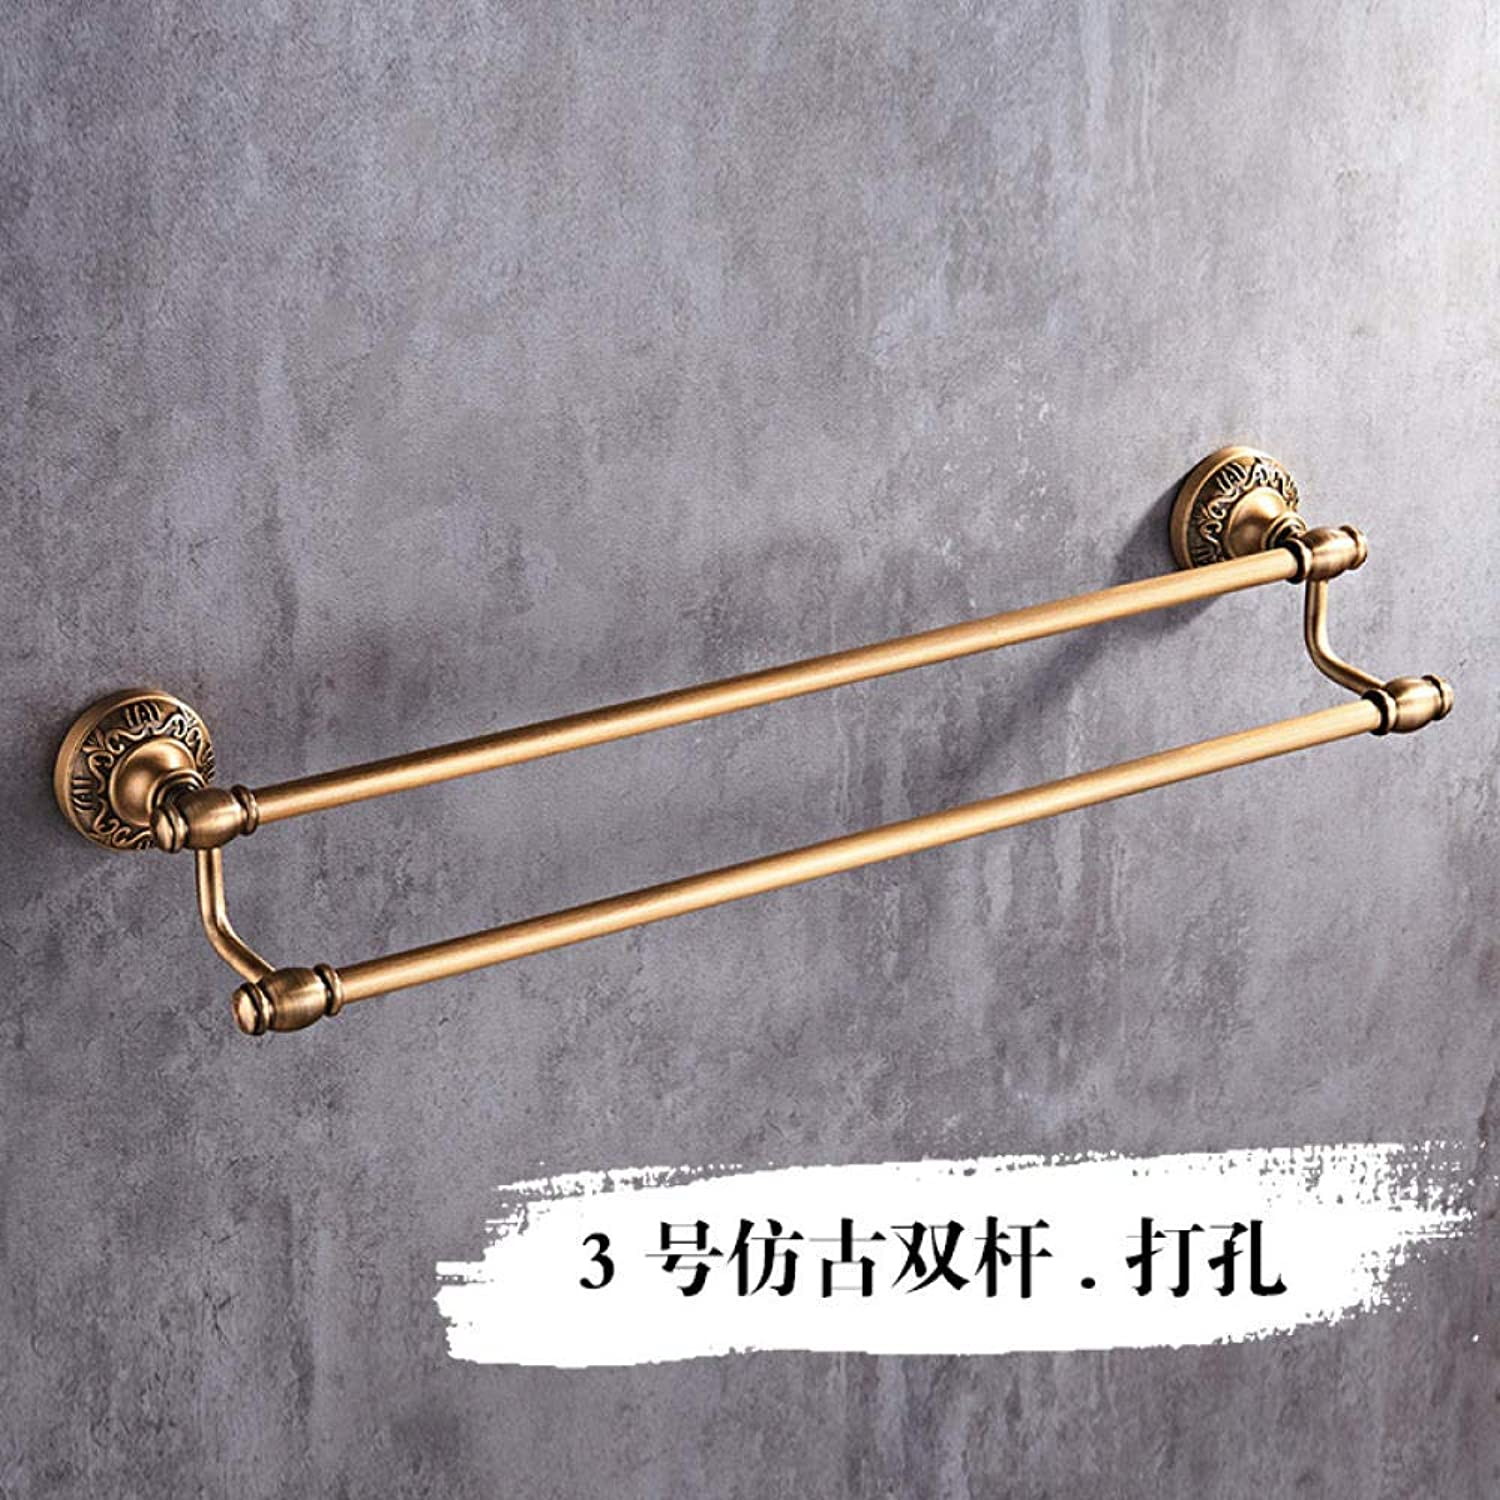 barato y de alta calidad Space Space Space aluminum towel rack towel bar European bathroom towel hanging nails No. 3 antique double rod punch  Más asequible